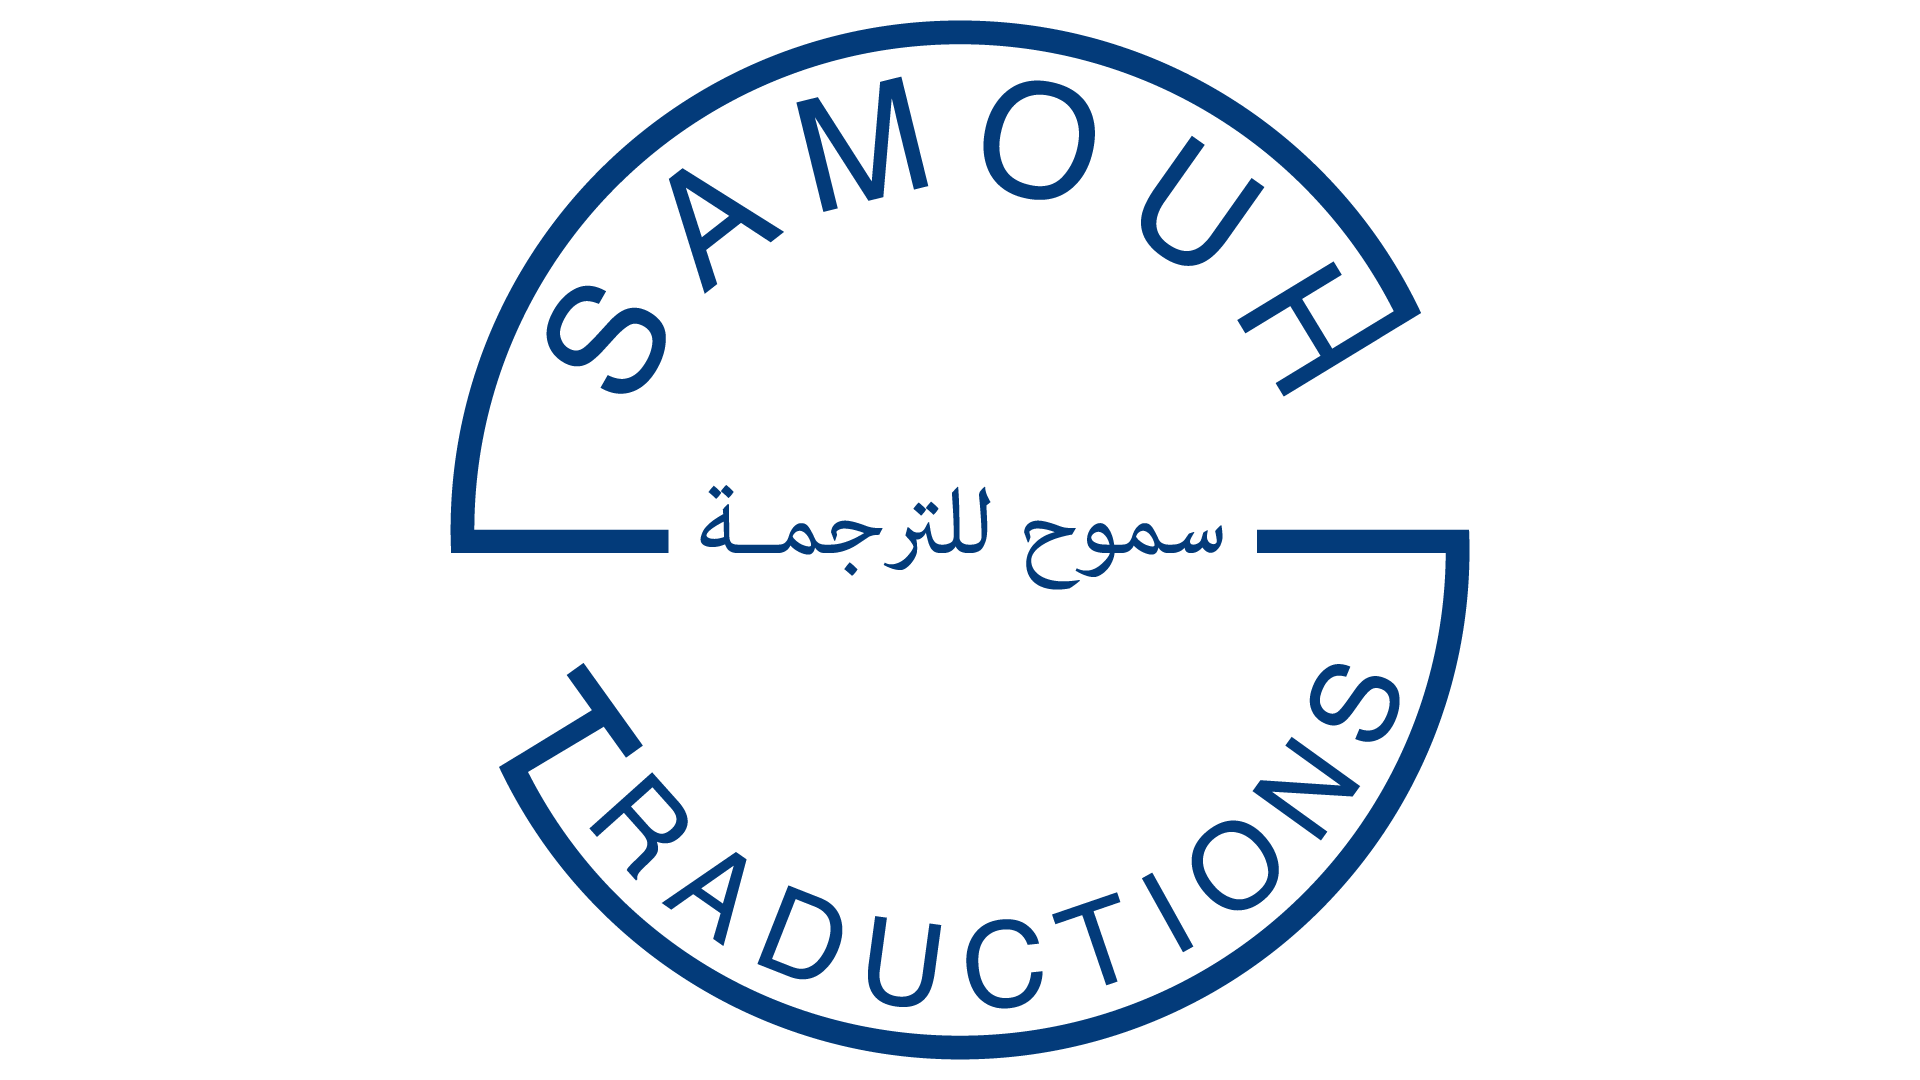 Samouh-Traductions-Webseite